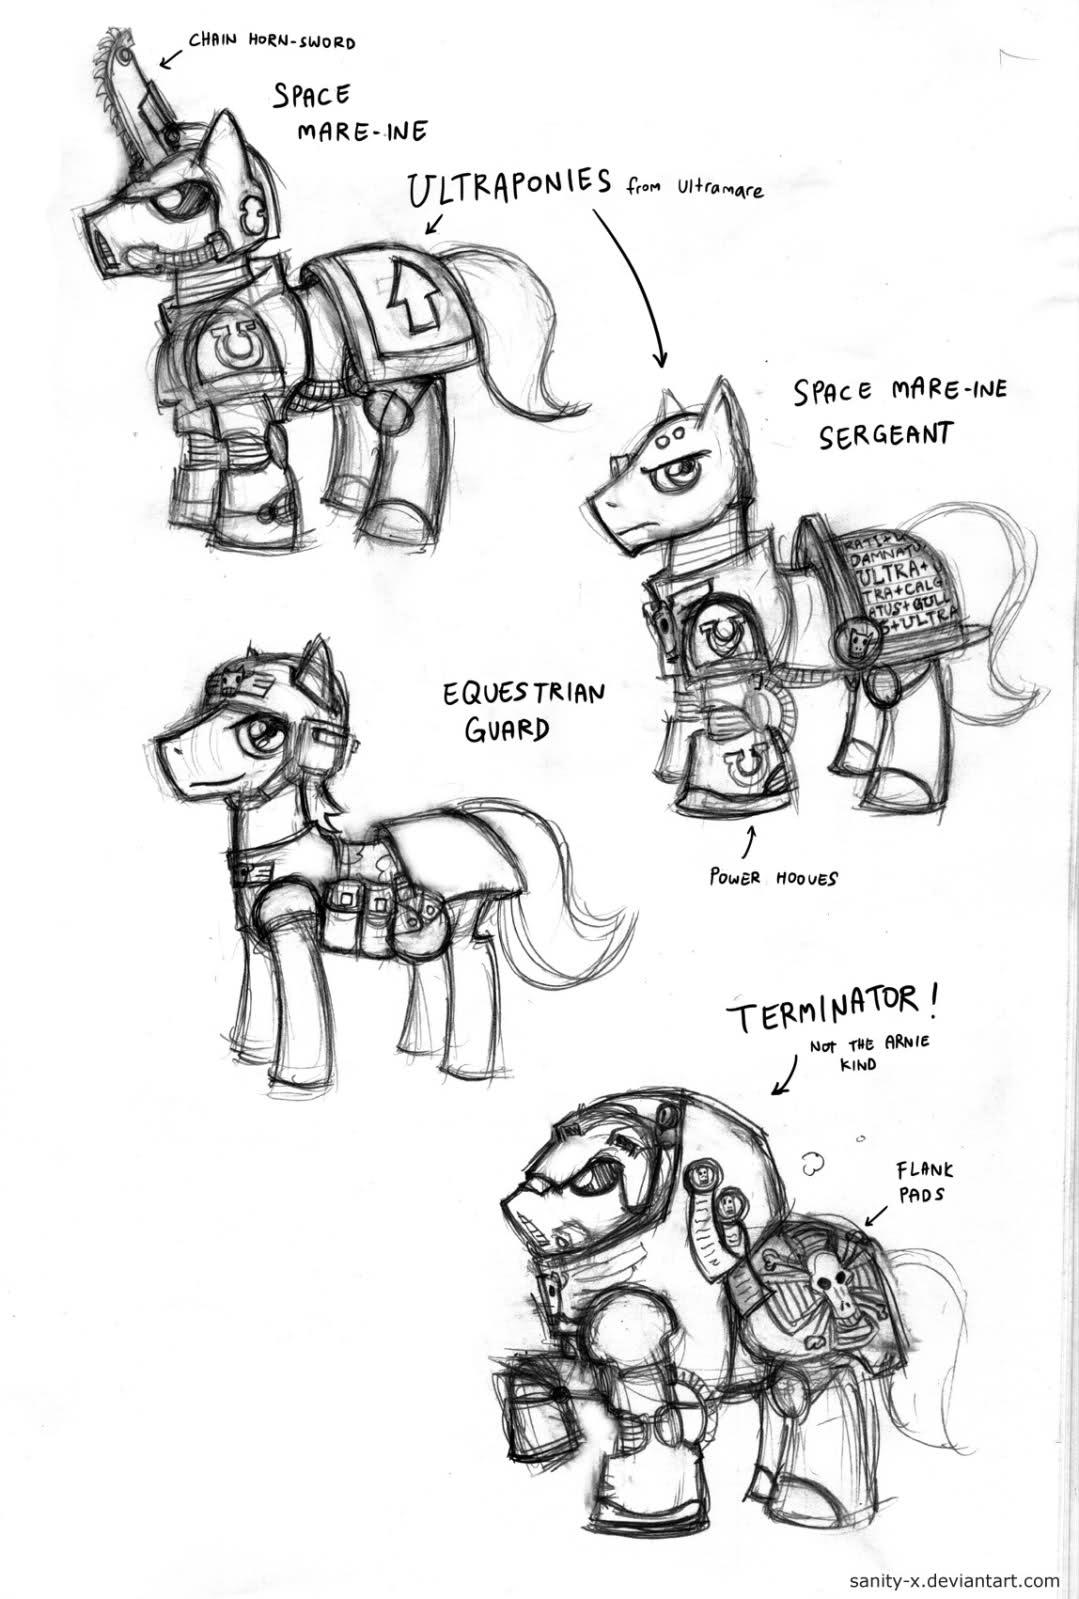 Concept, Imperial Guard, Mlp, My Little Pony, Sketch, Space Marines, Stupid, Ultramarines, Warhammer 40,000